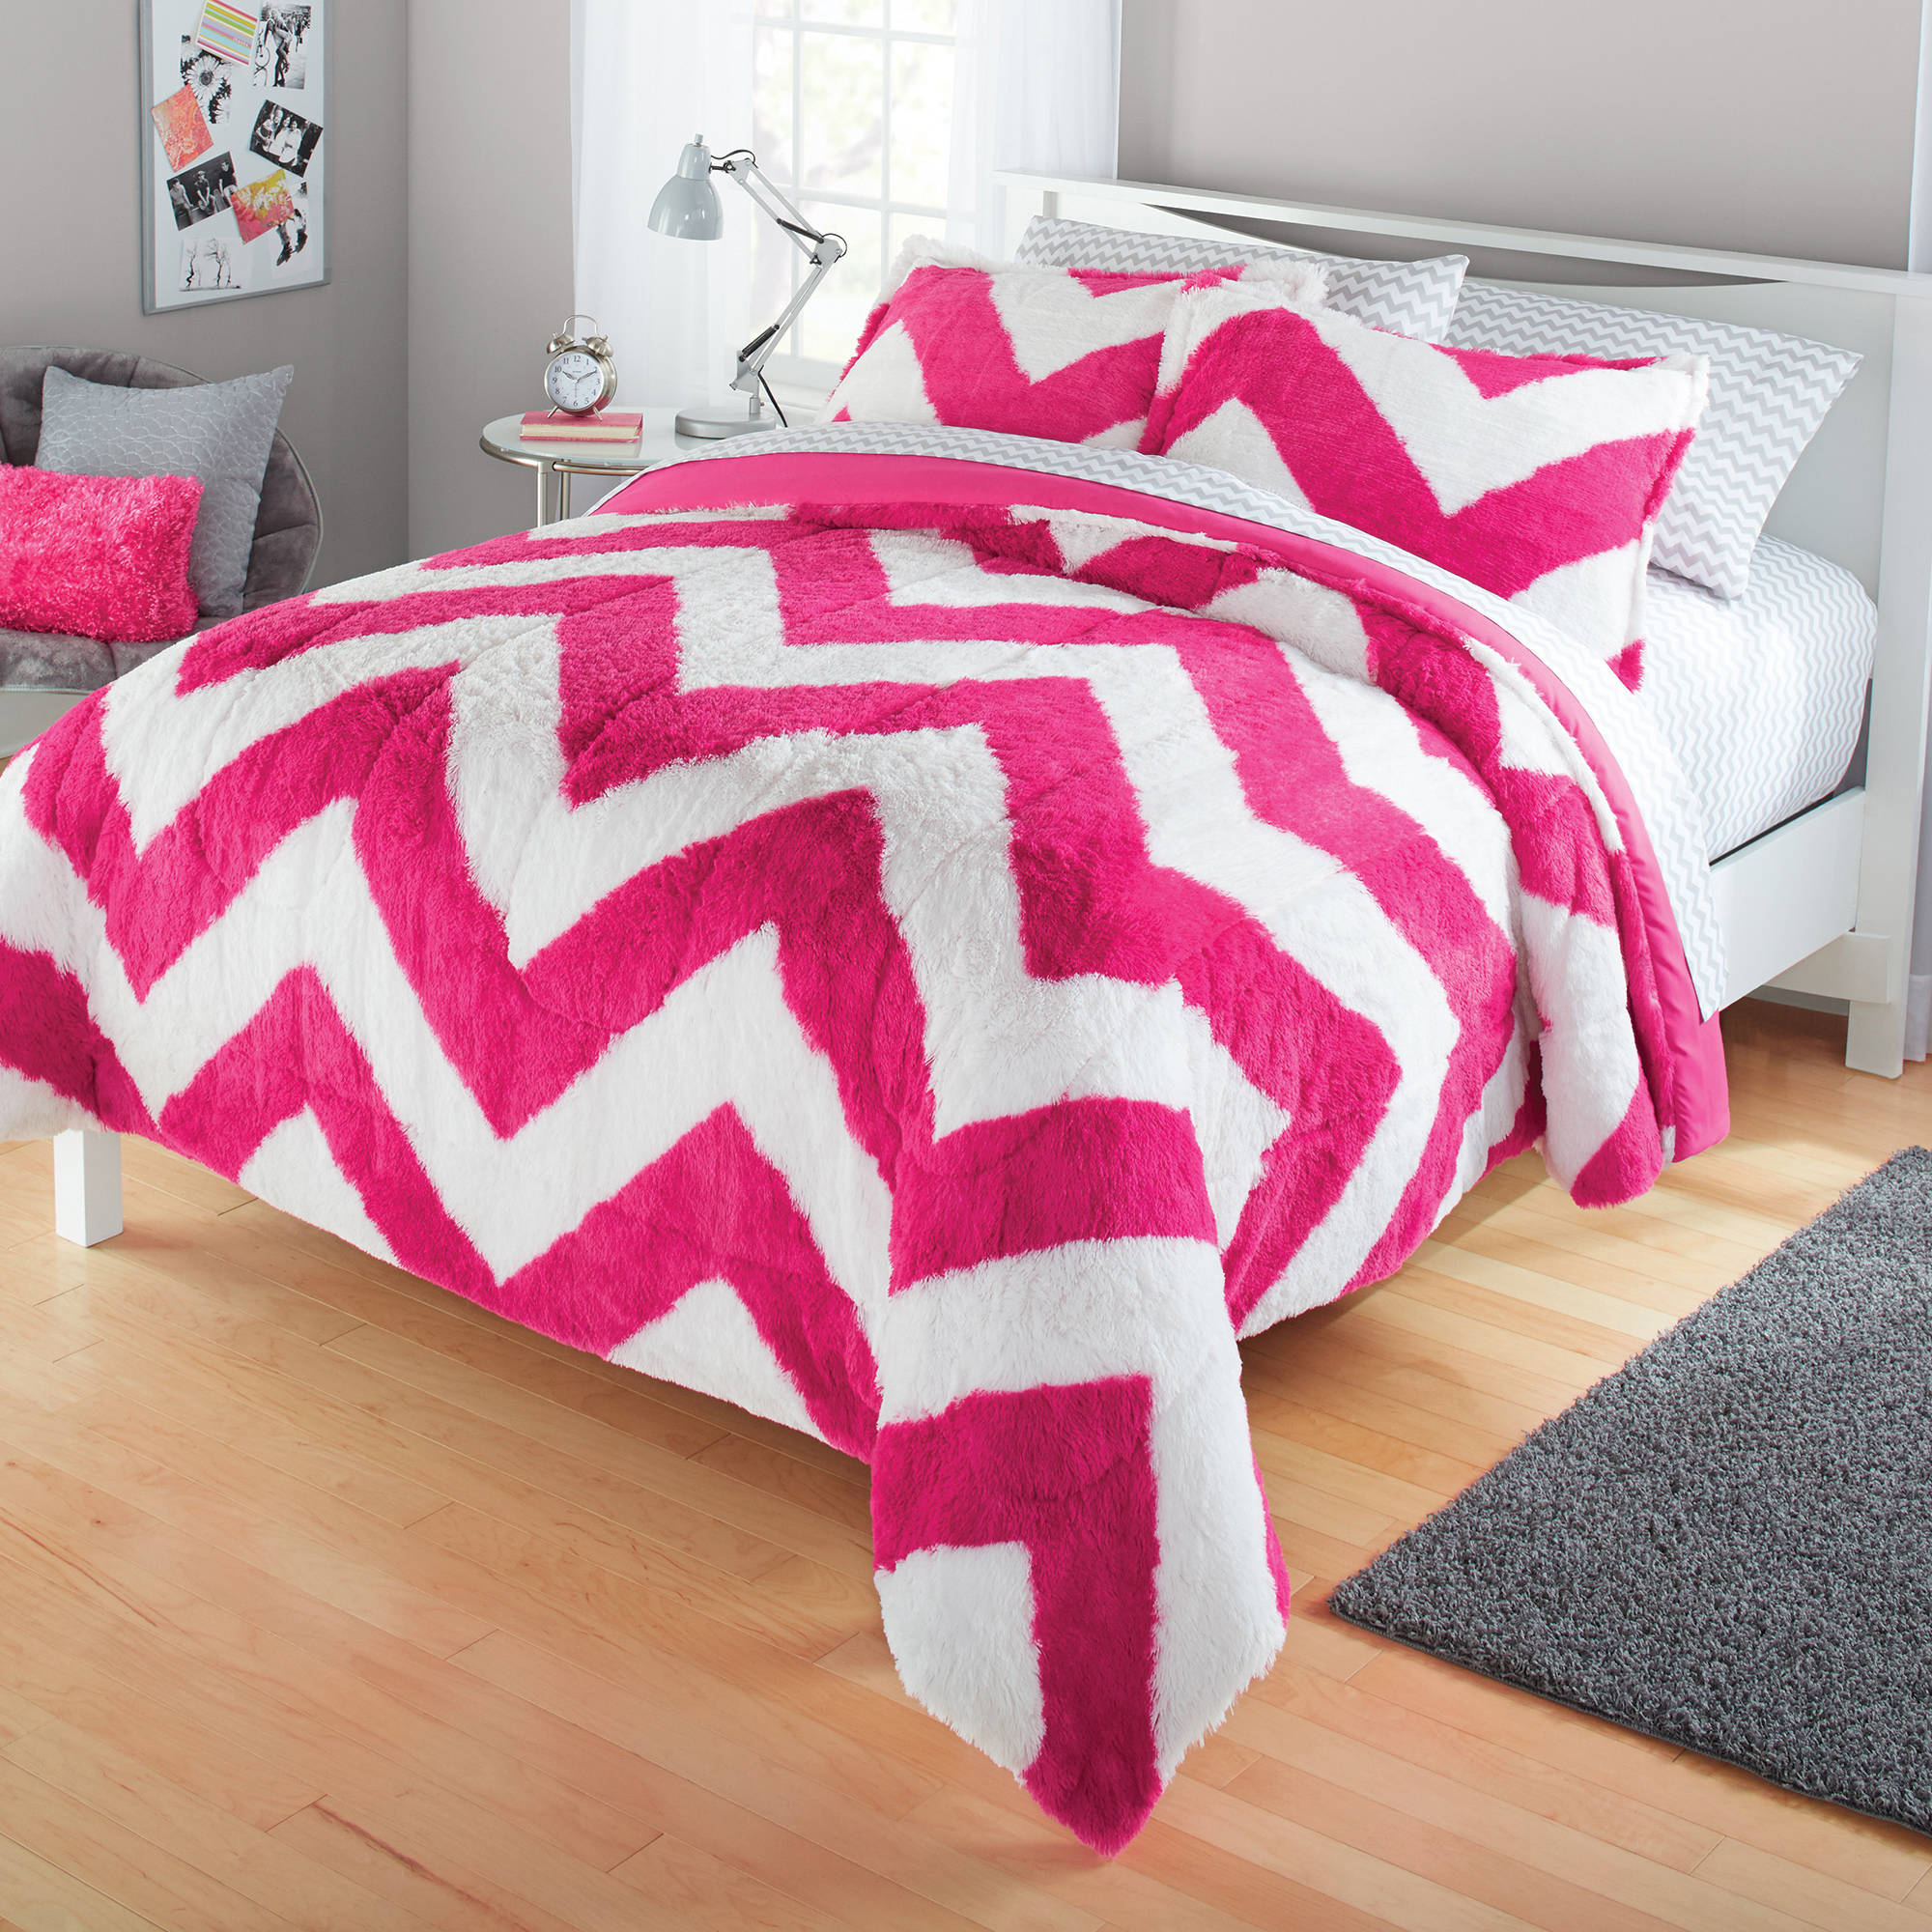 Wonderful Formula Arrow Novelty Bed in a Bag Bedding Set - Walmart.com OF55